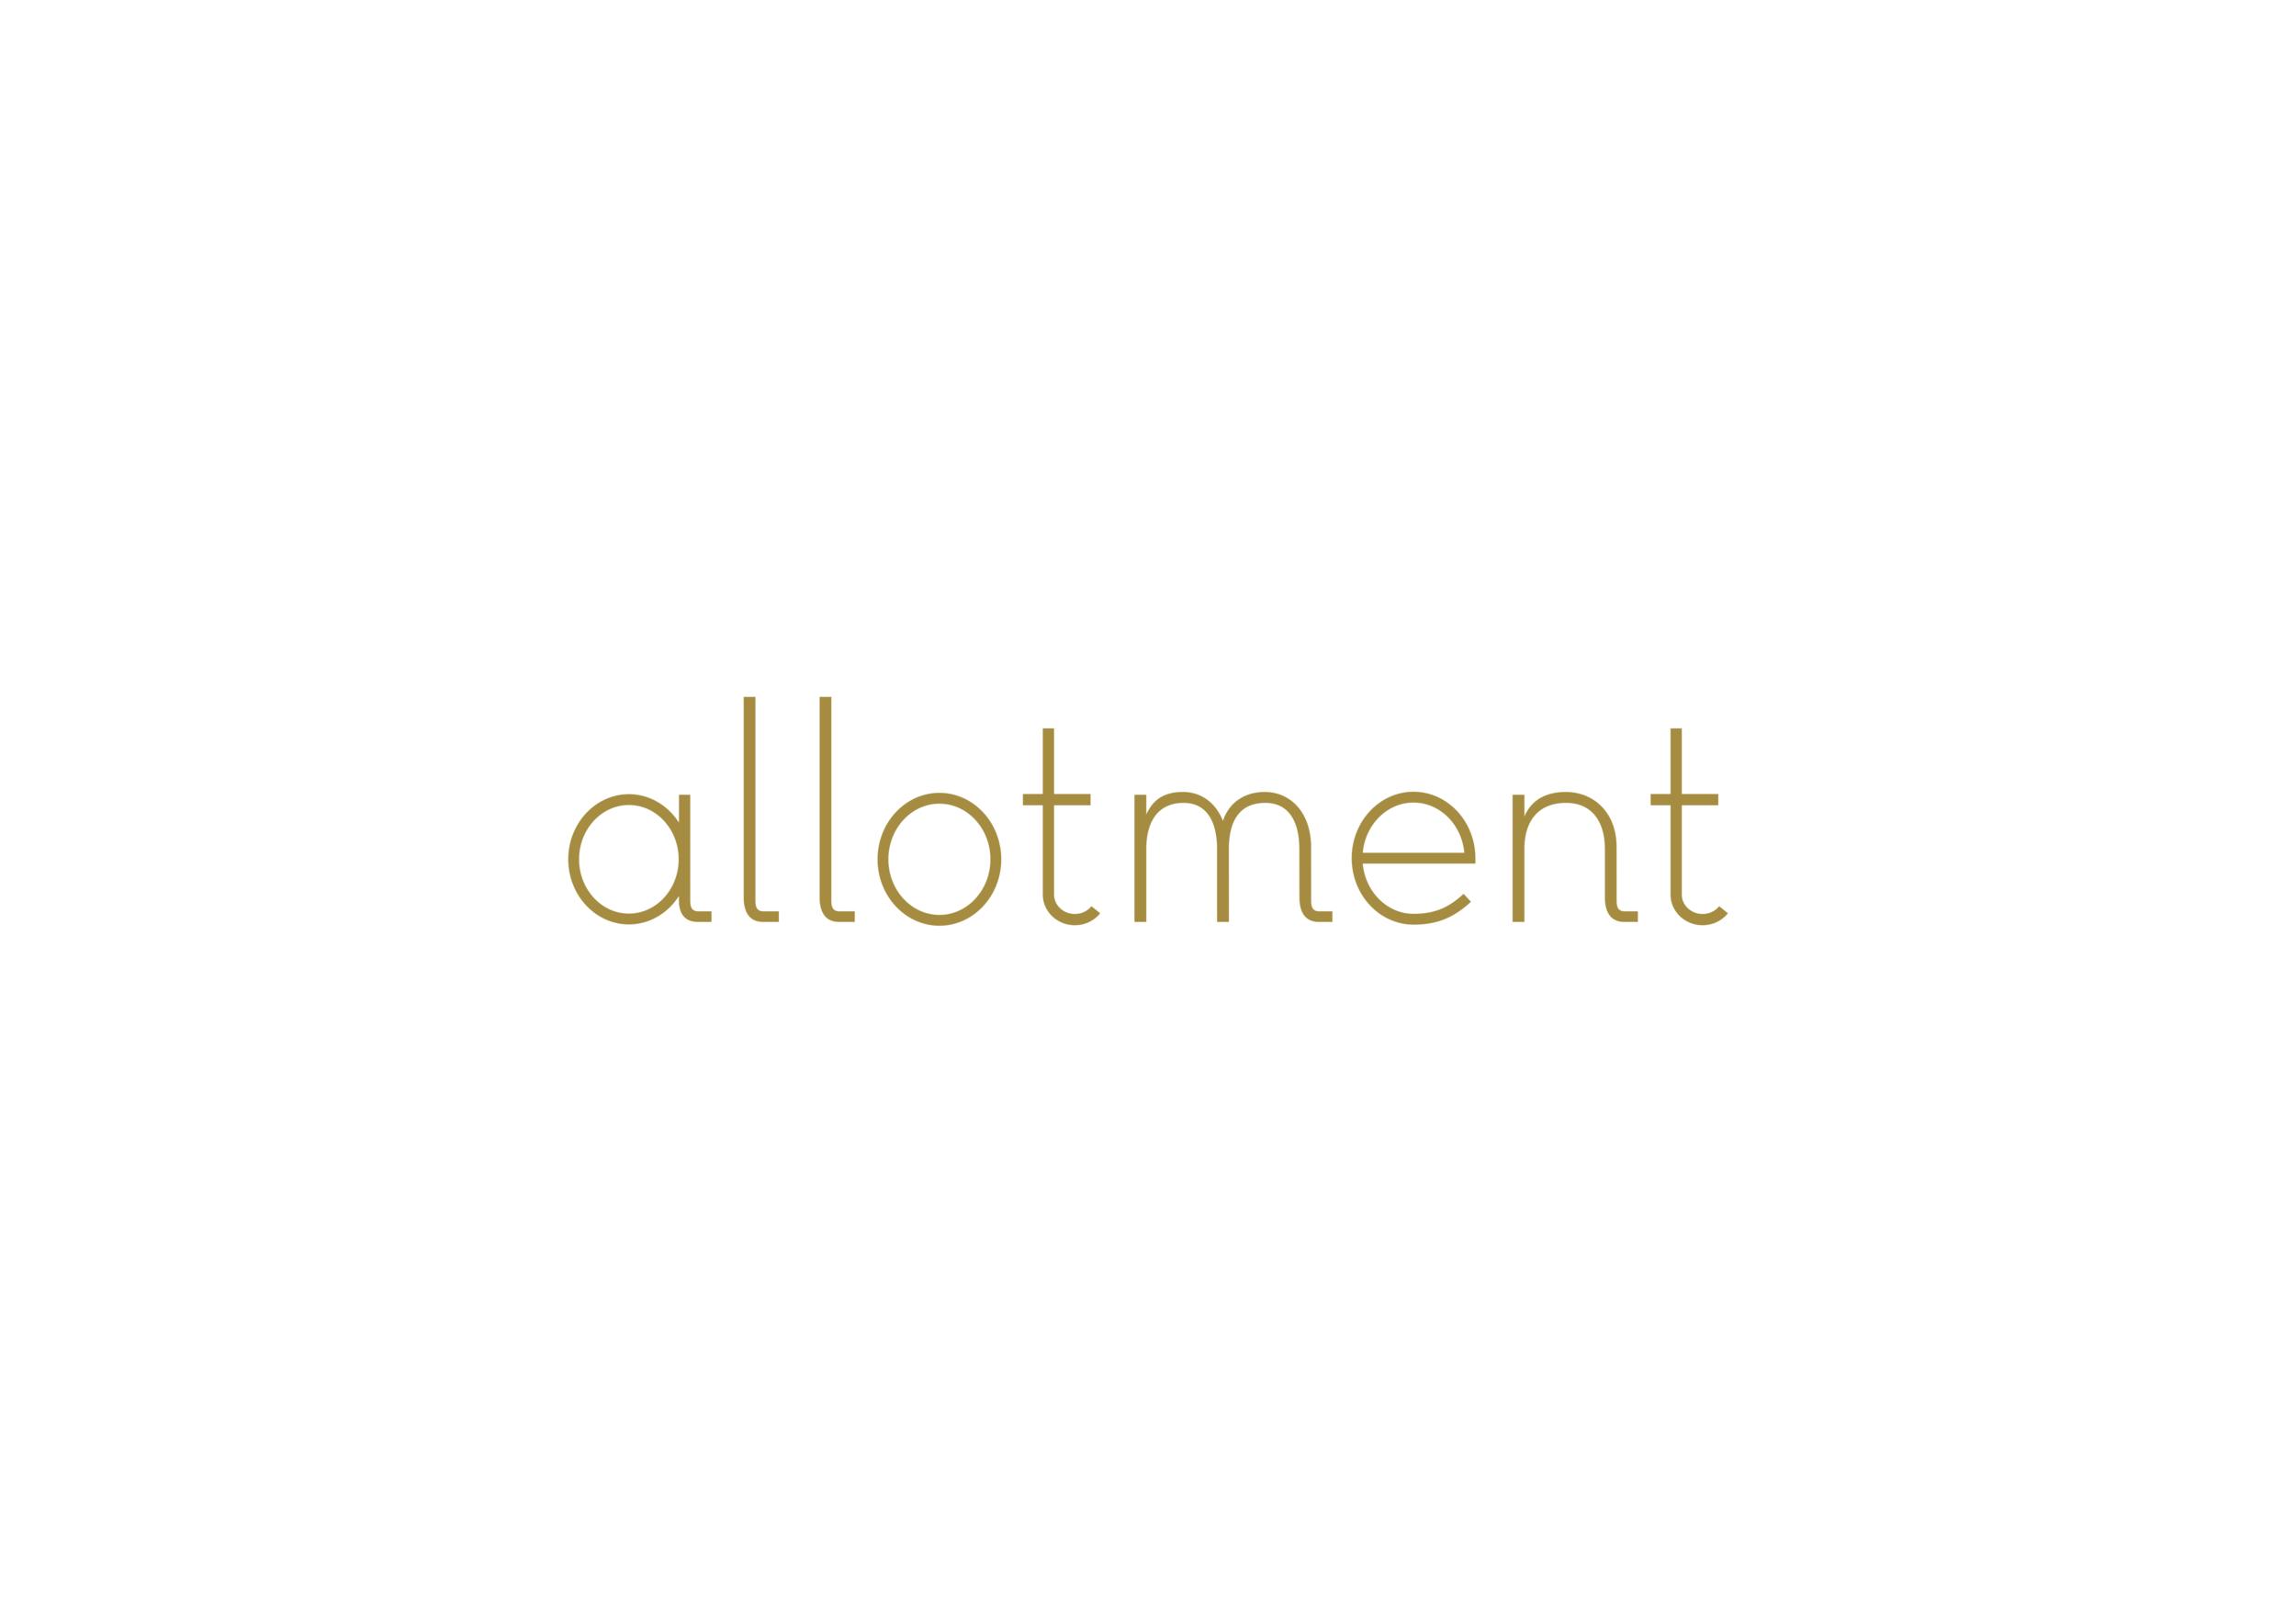 Copy of Allotment Logo Gold.png